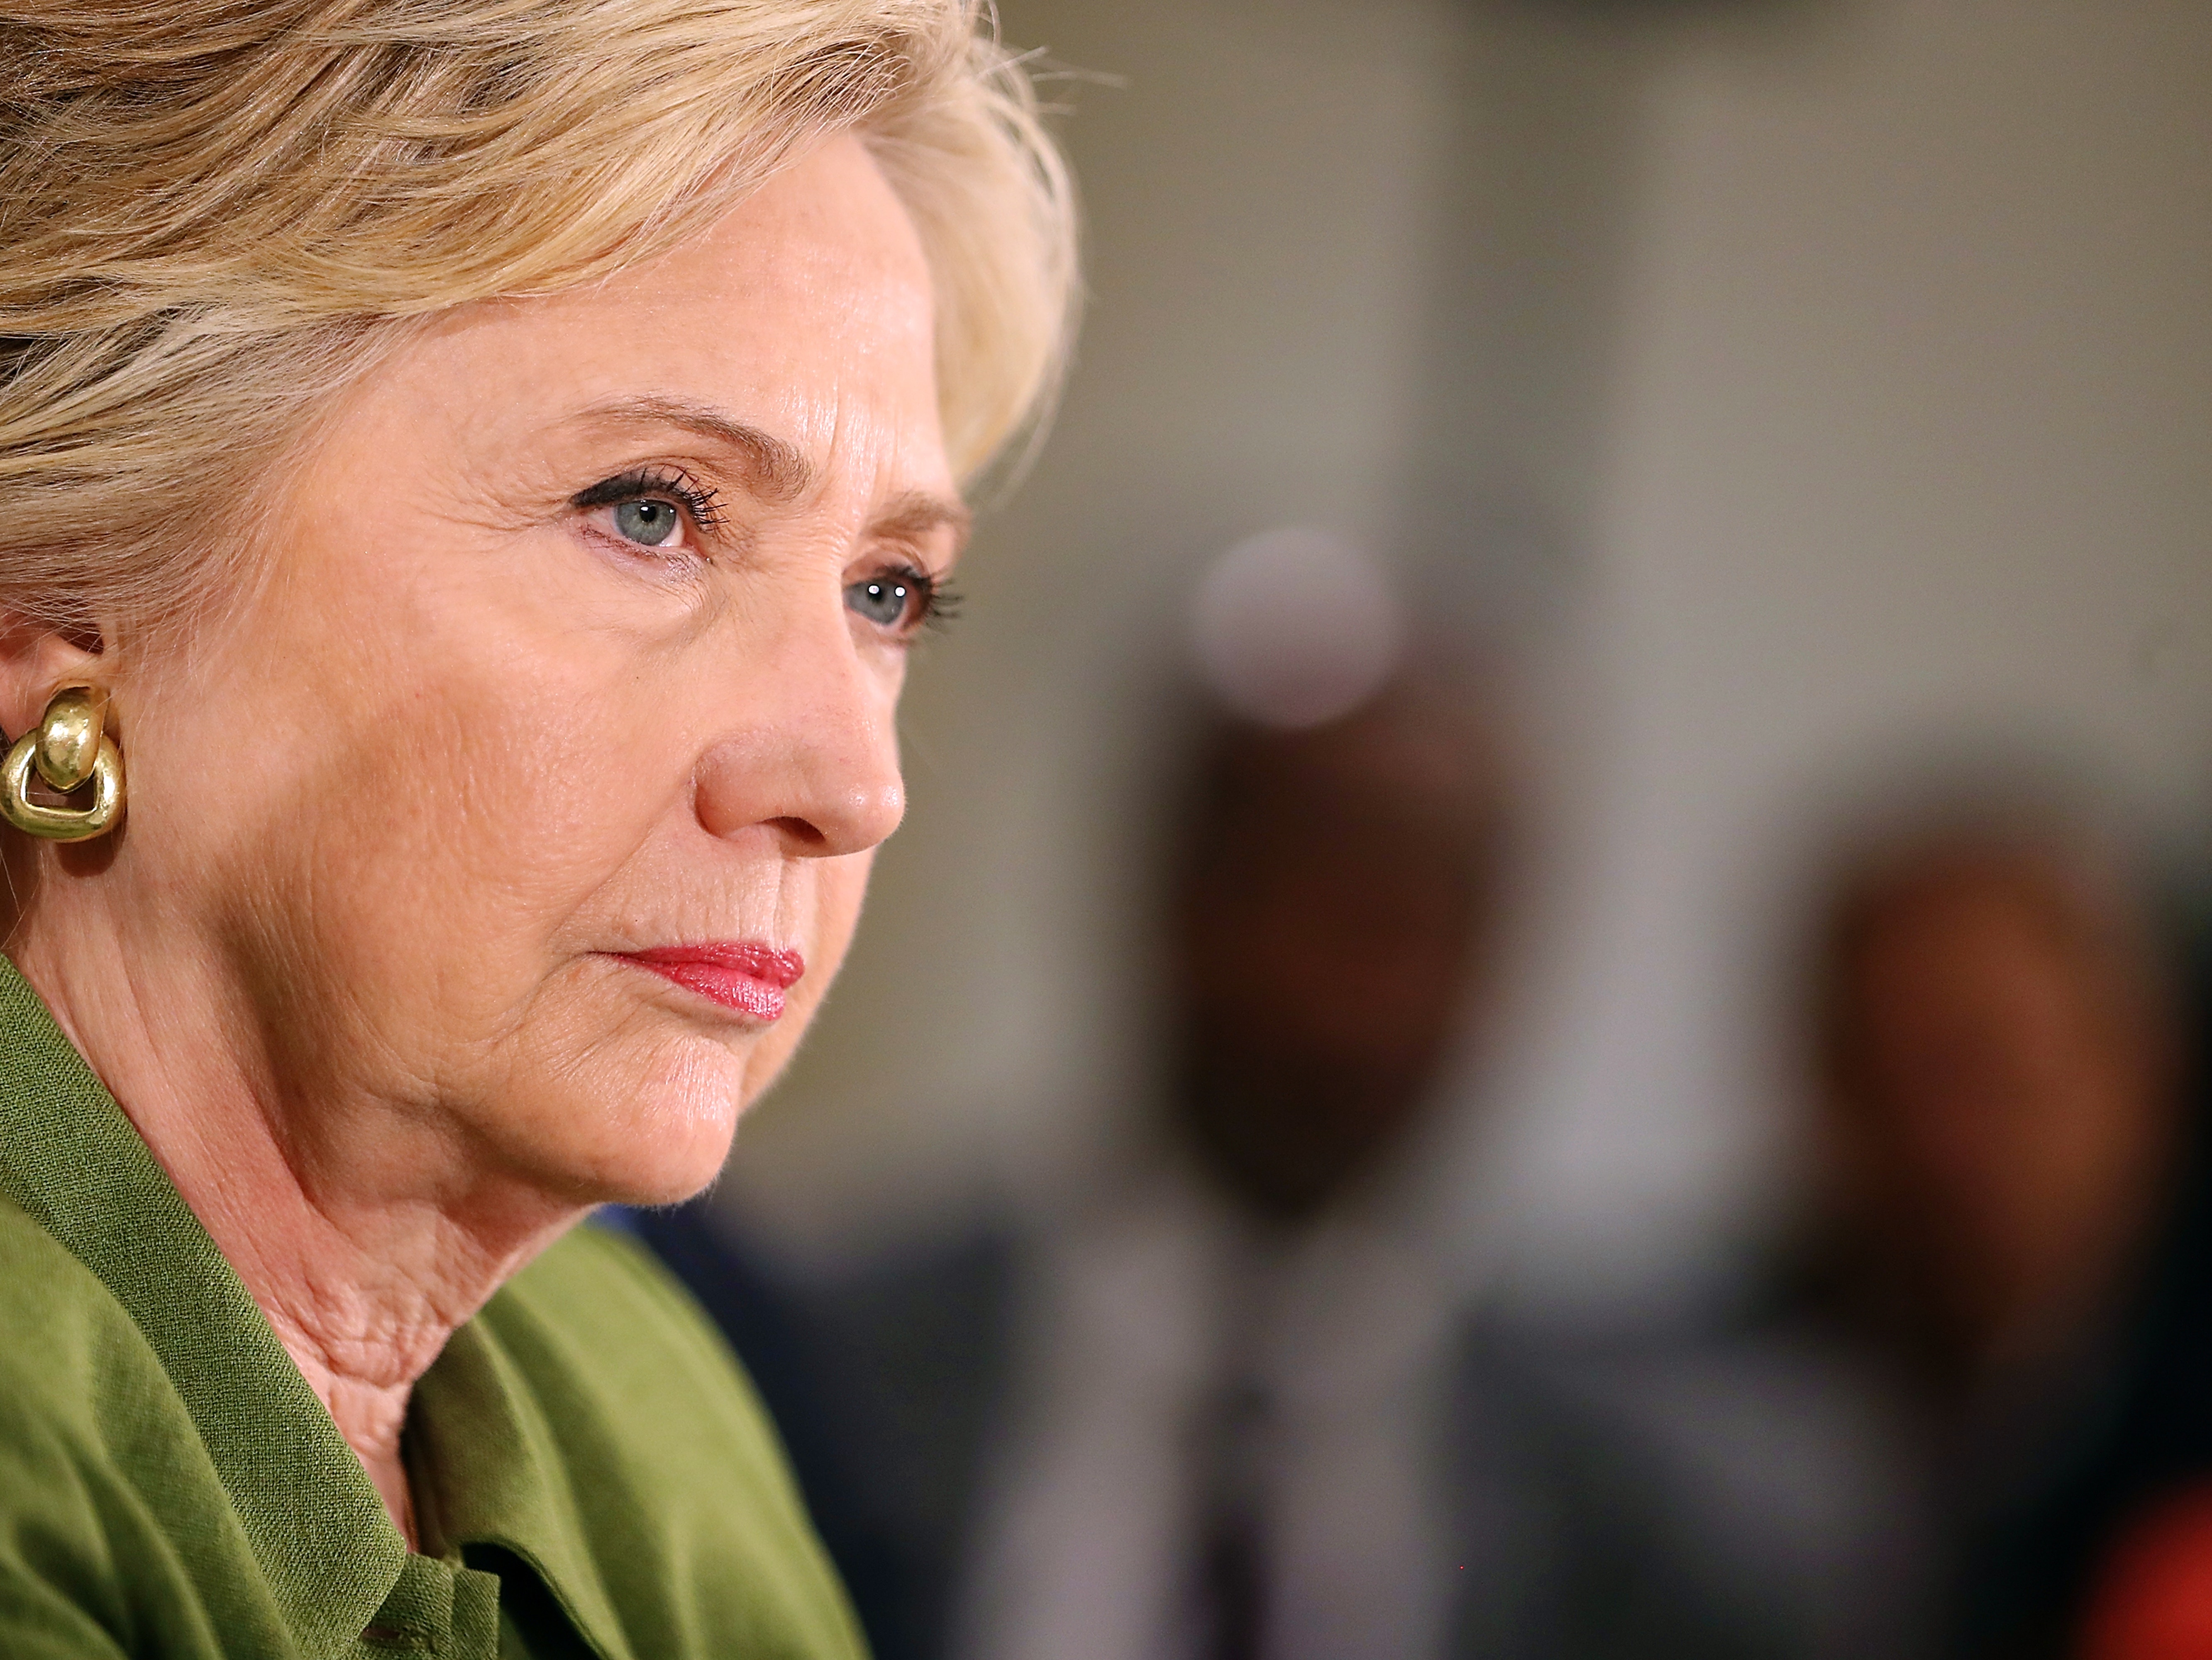 WikiLeaks Shares Voter Names, Addresses in Hillary Clinton Email Dump